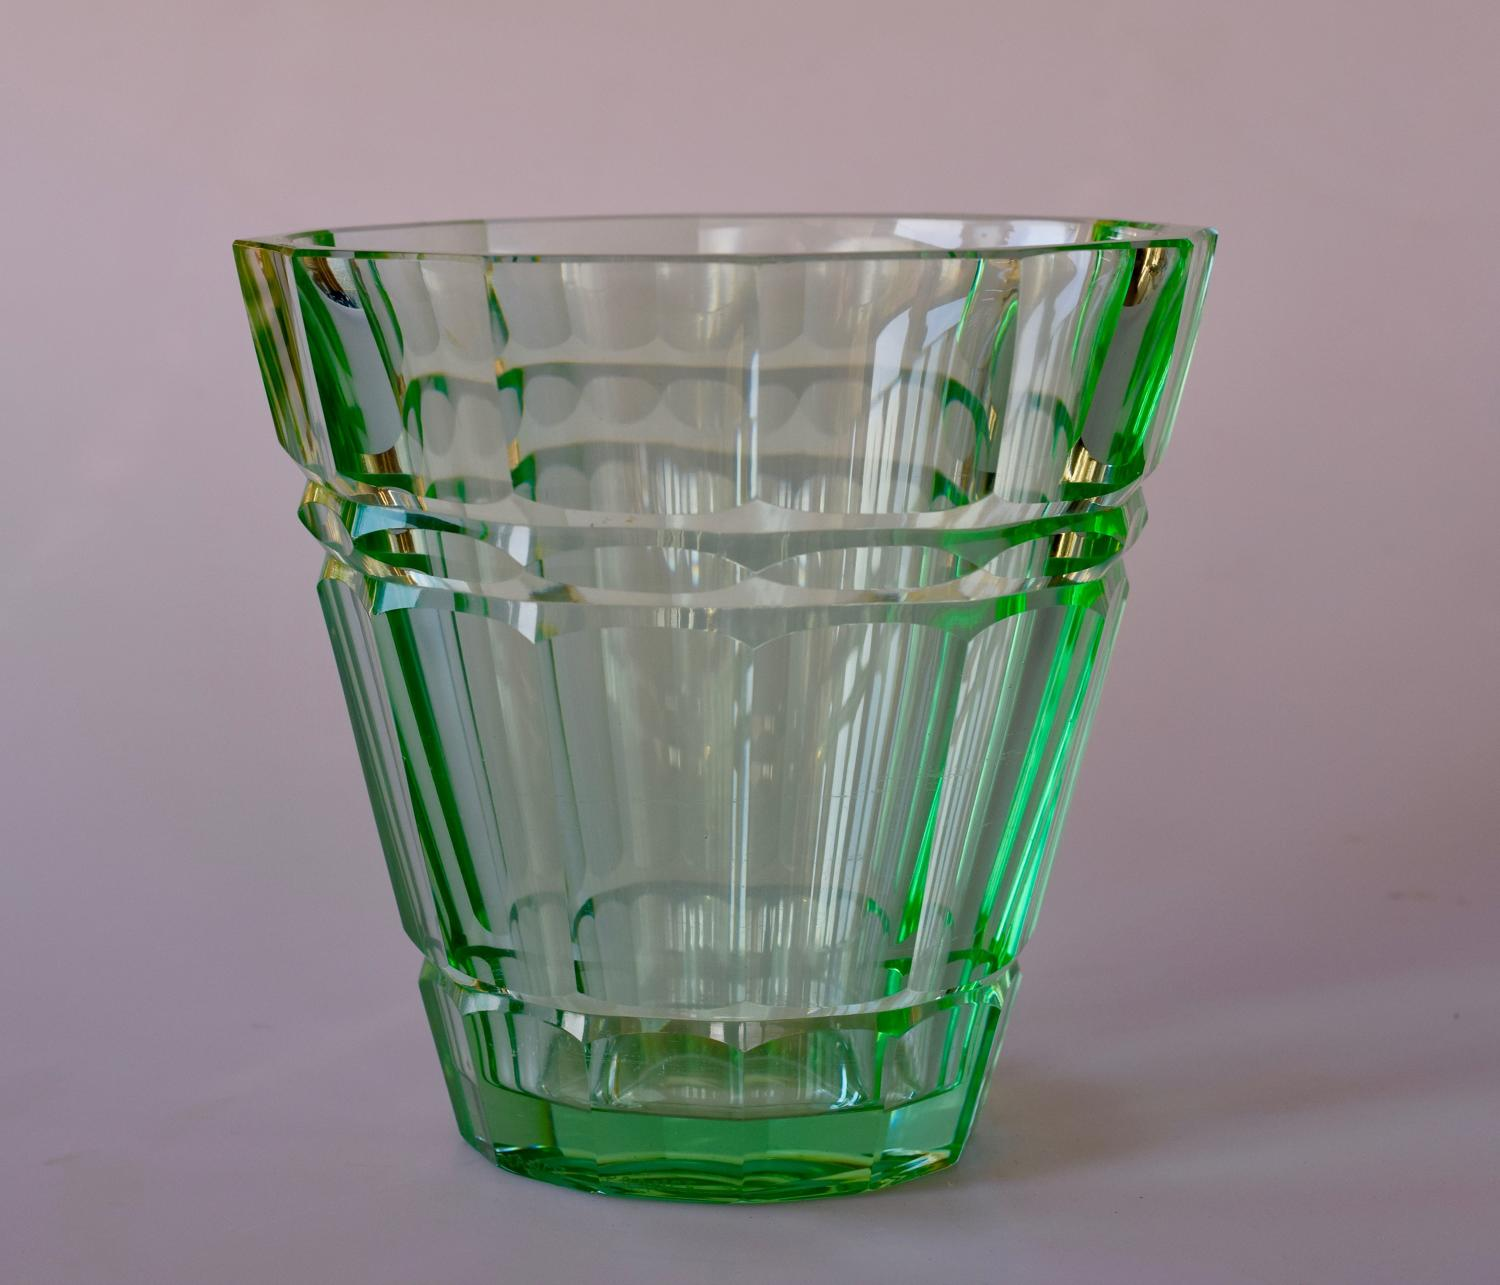 Green Daum facetted vase